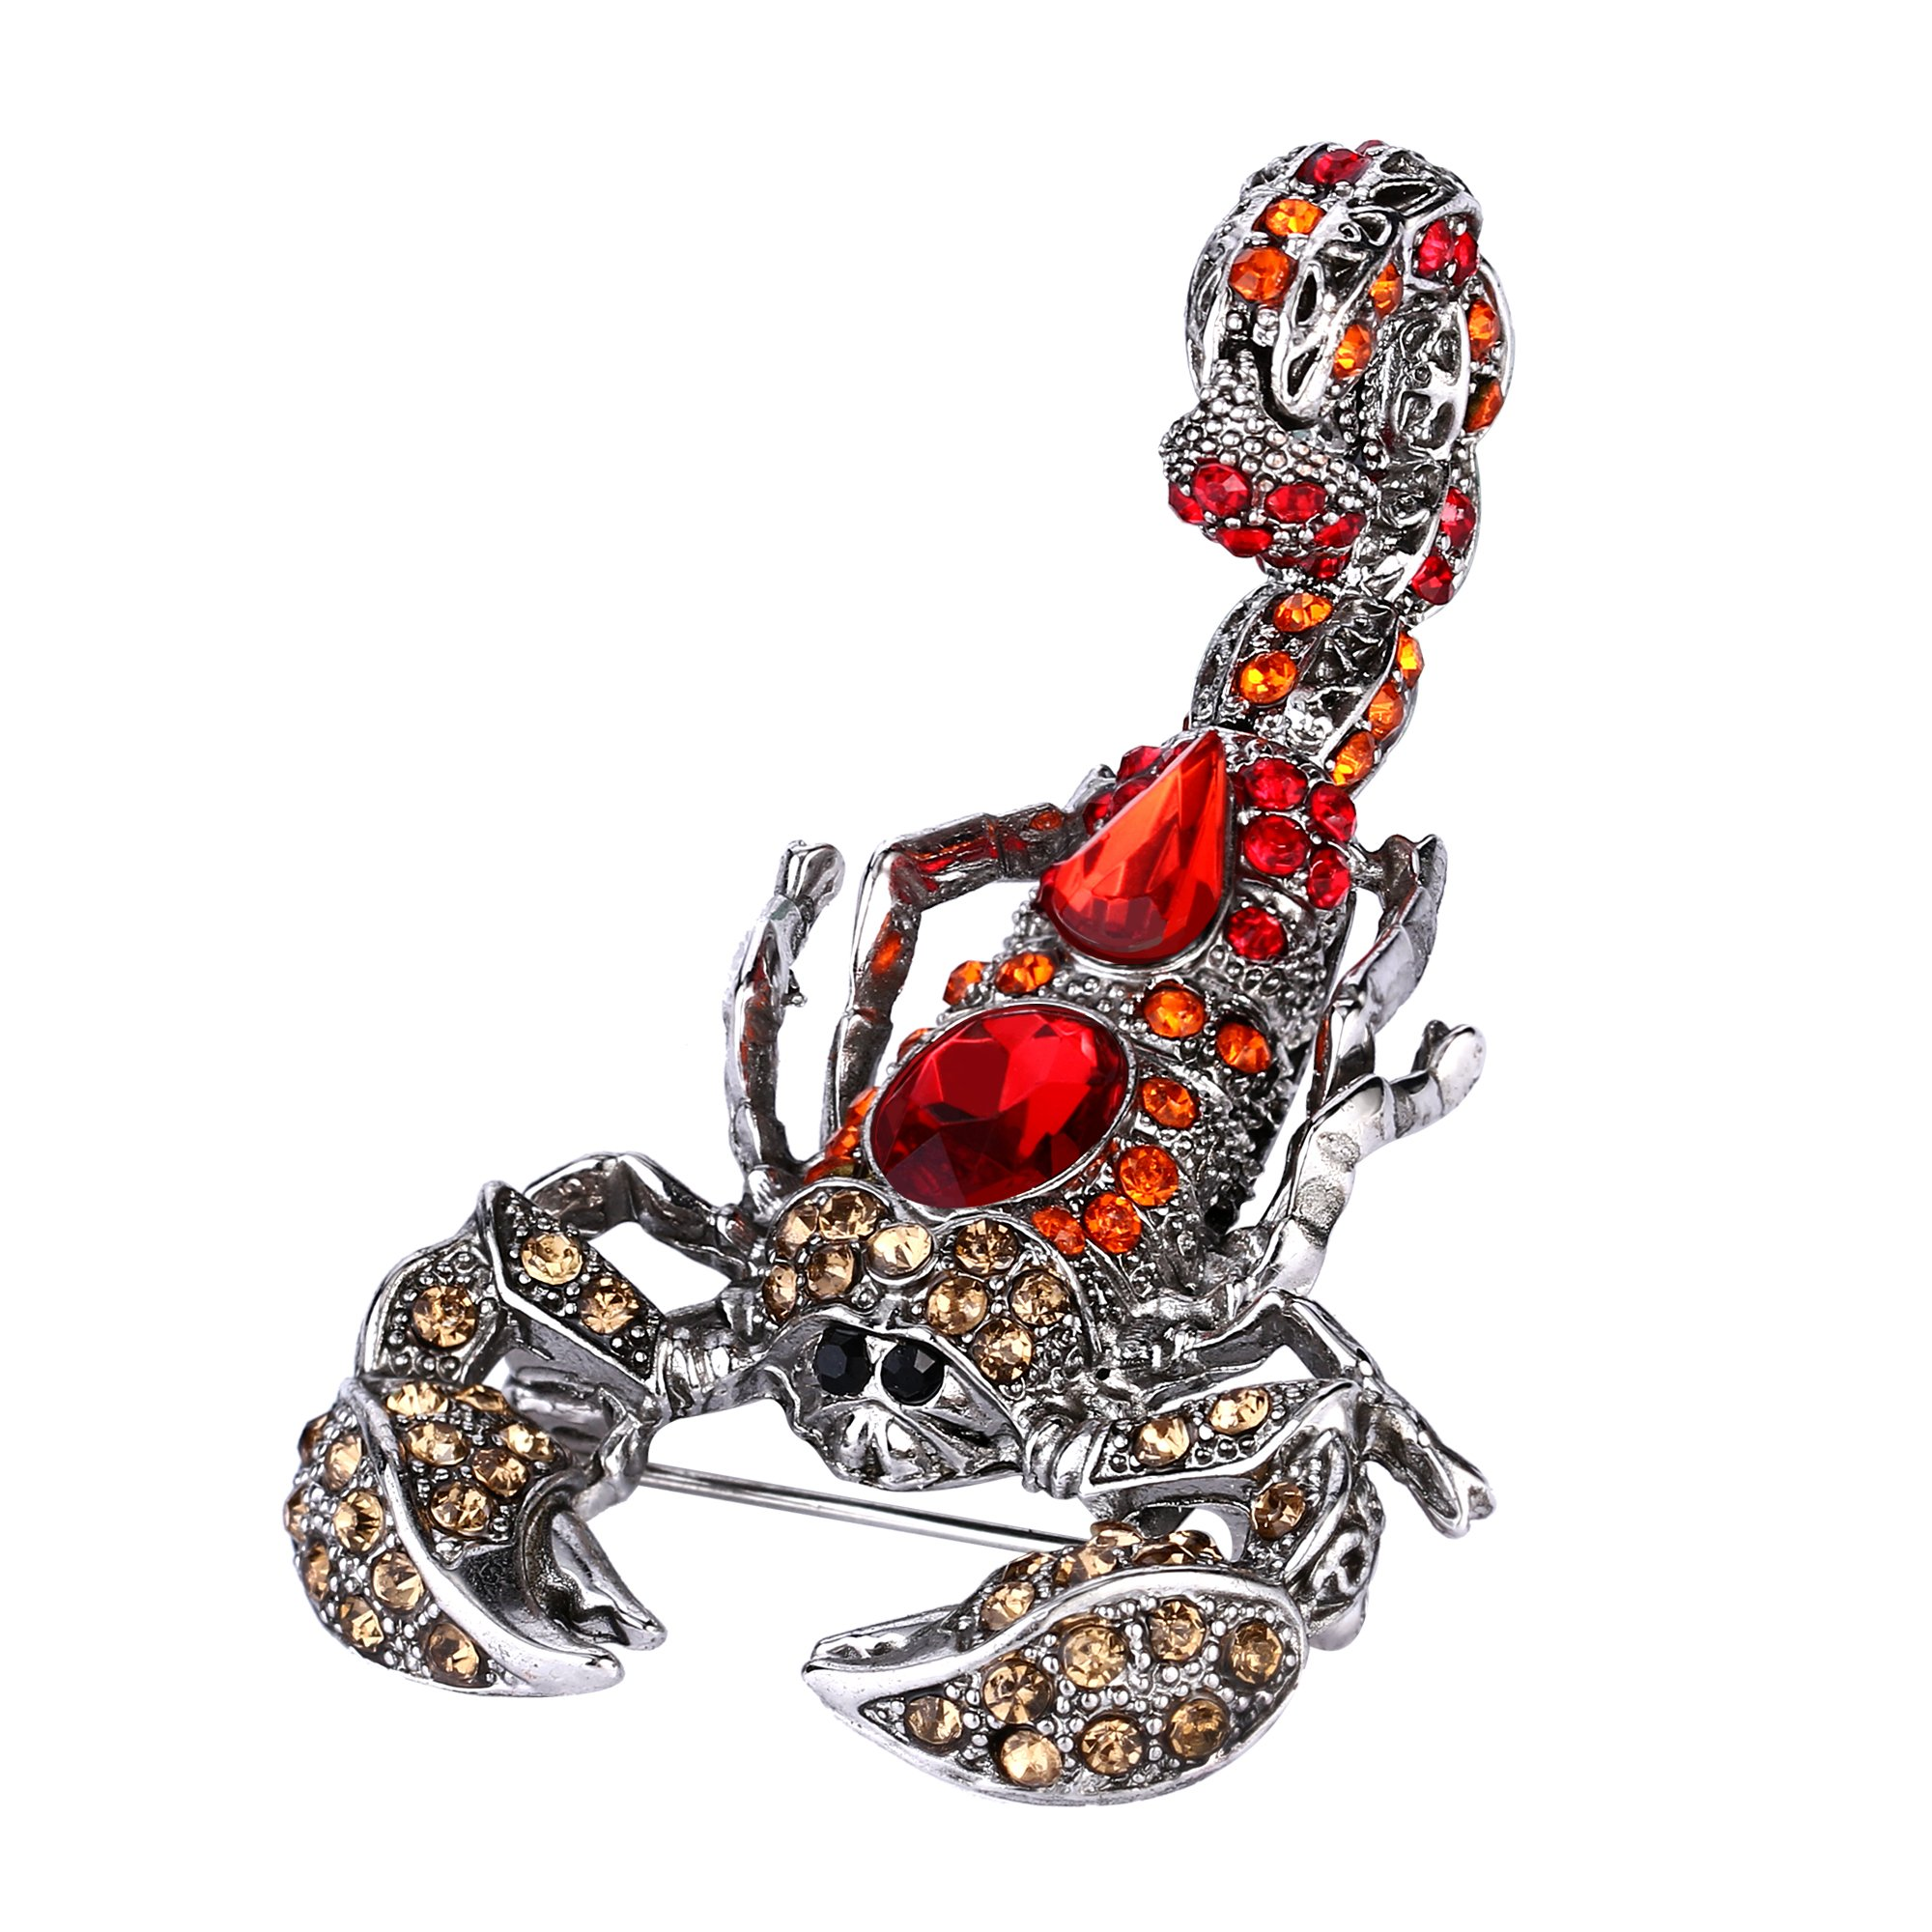 EVER FAITH Crystal Vintage Style Scorpion Animal Brooch Red w/ Orange Red Antique Silver-Tone